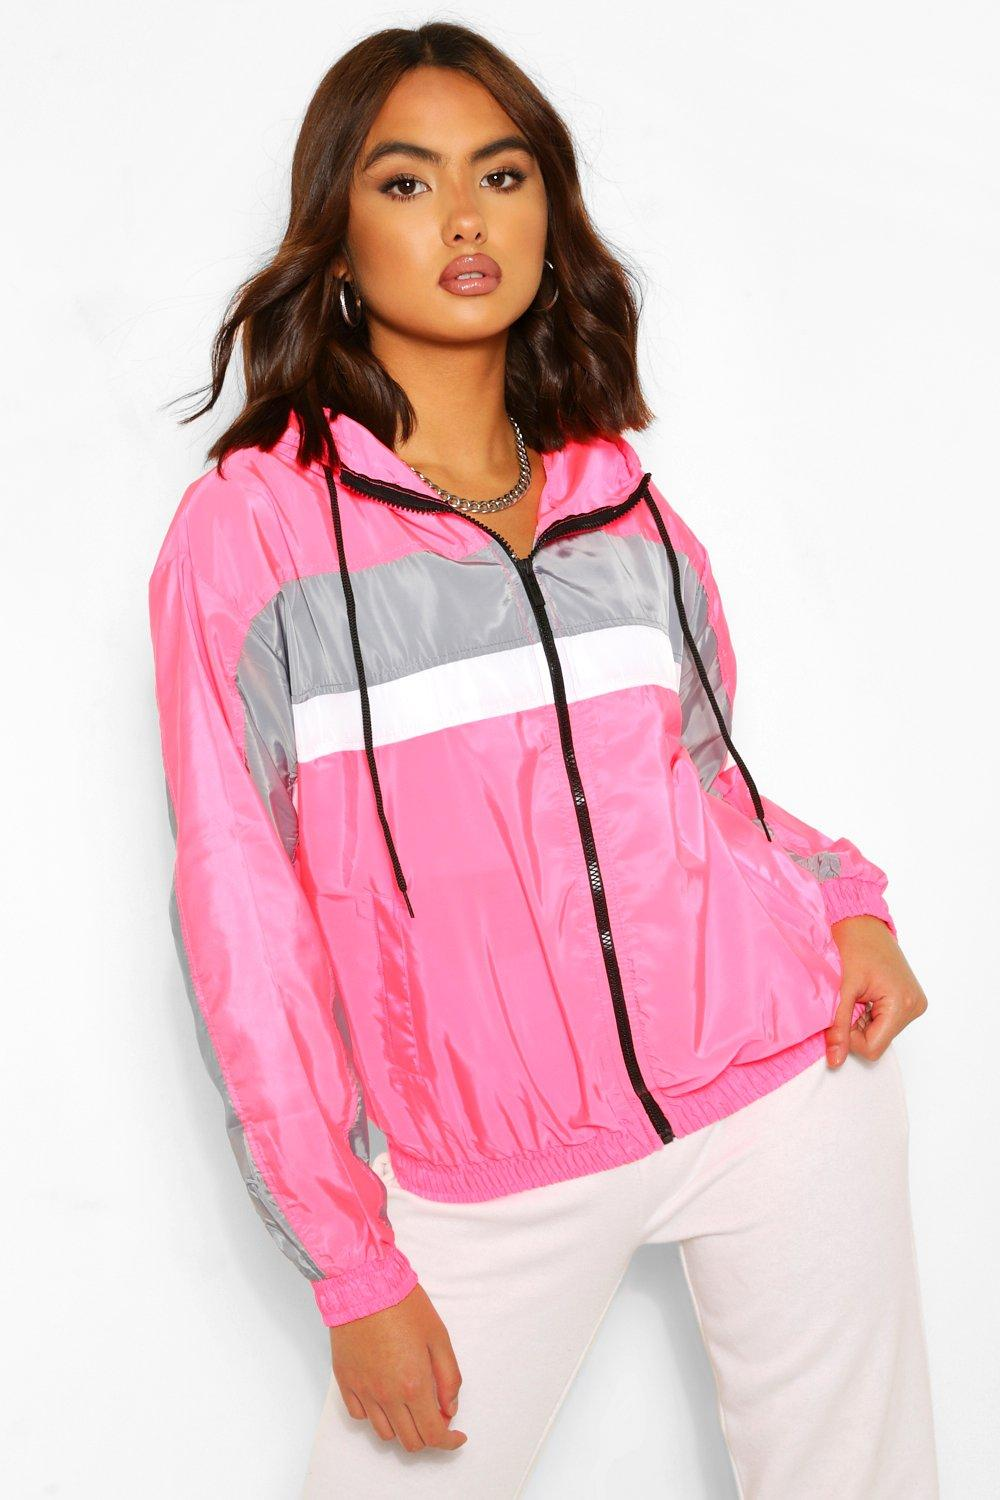 1980s Clothing, Fashion | 80s Style Clothes Womens Stripe Panel Hooded Windbreaker - Pink - 12 $18.00 AT vintagedancer.com